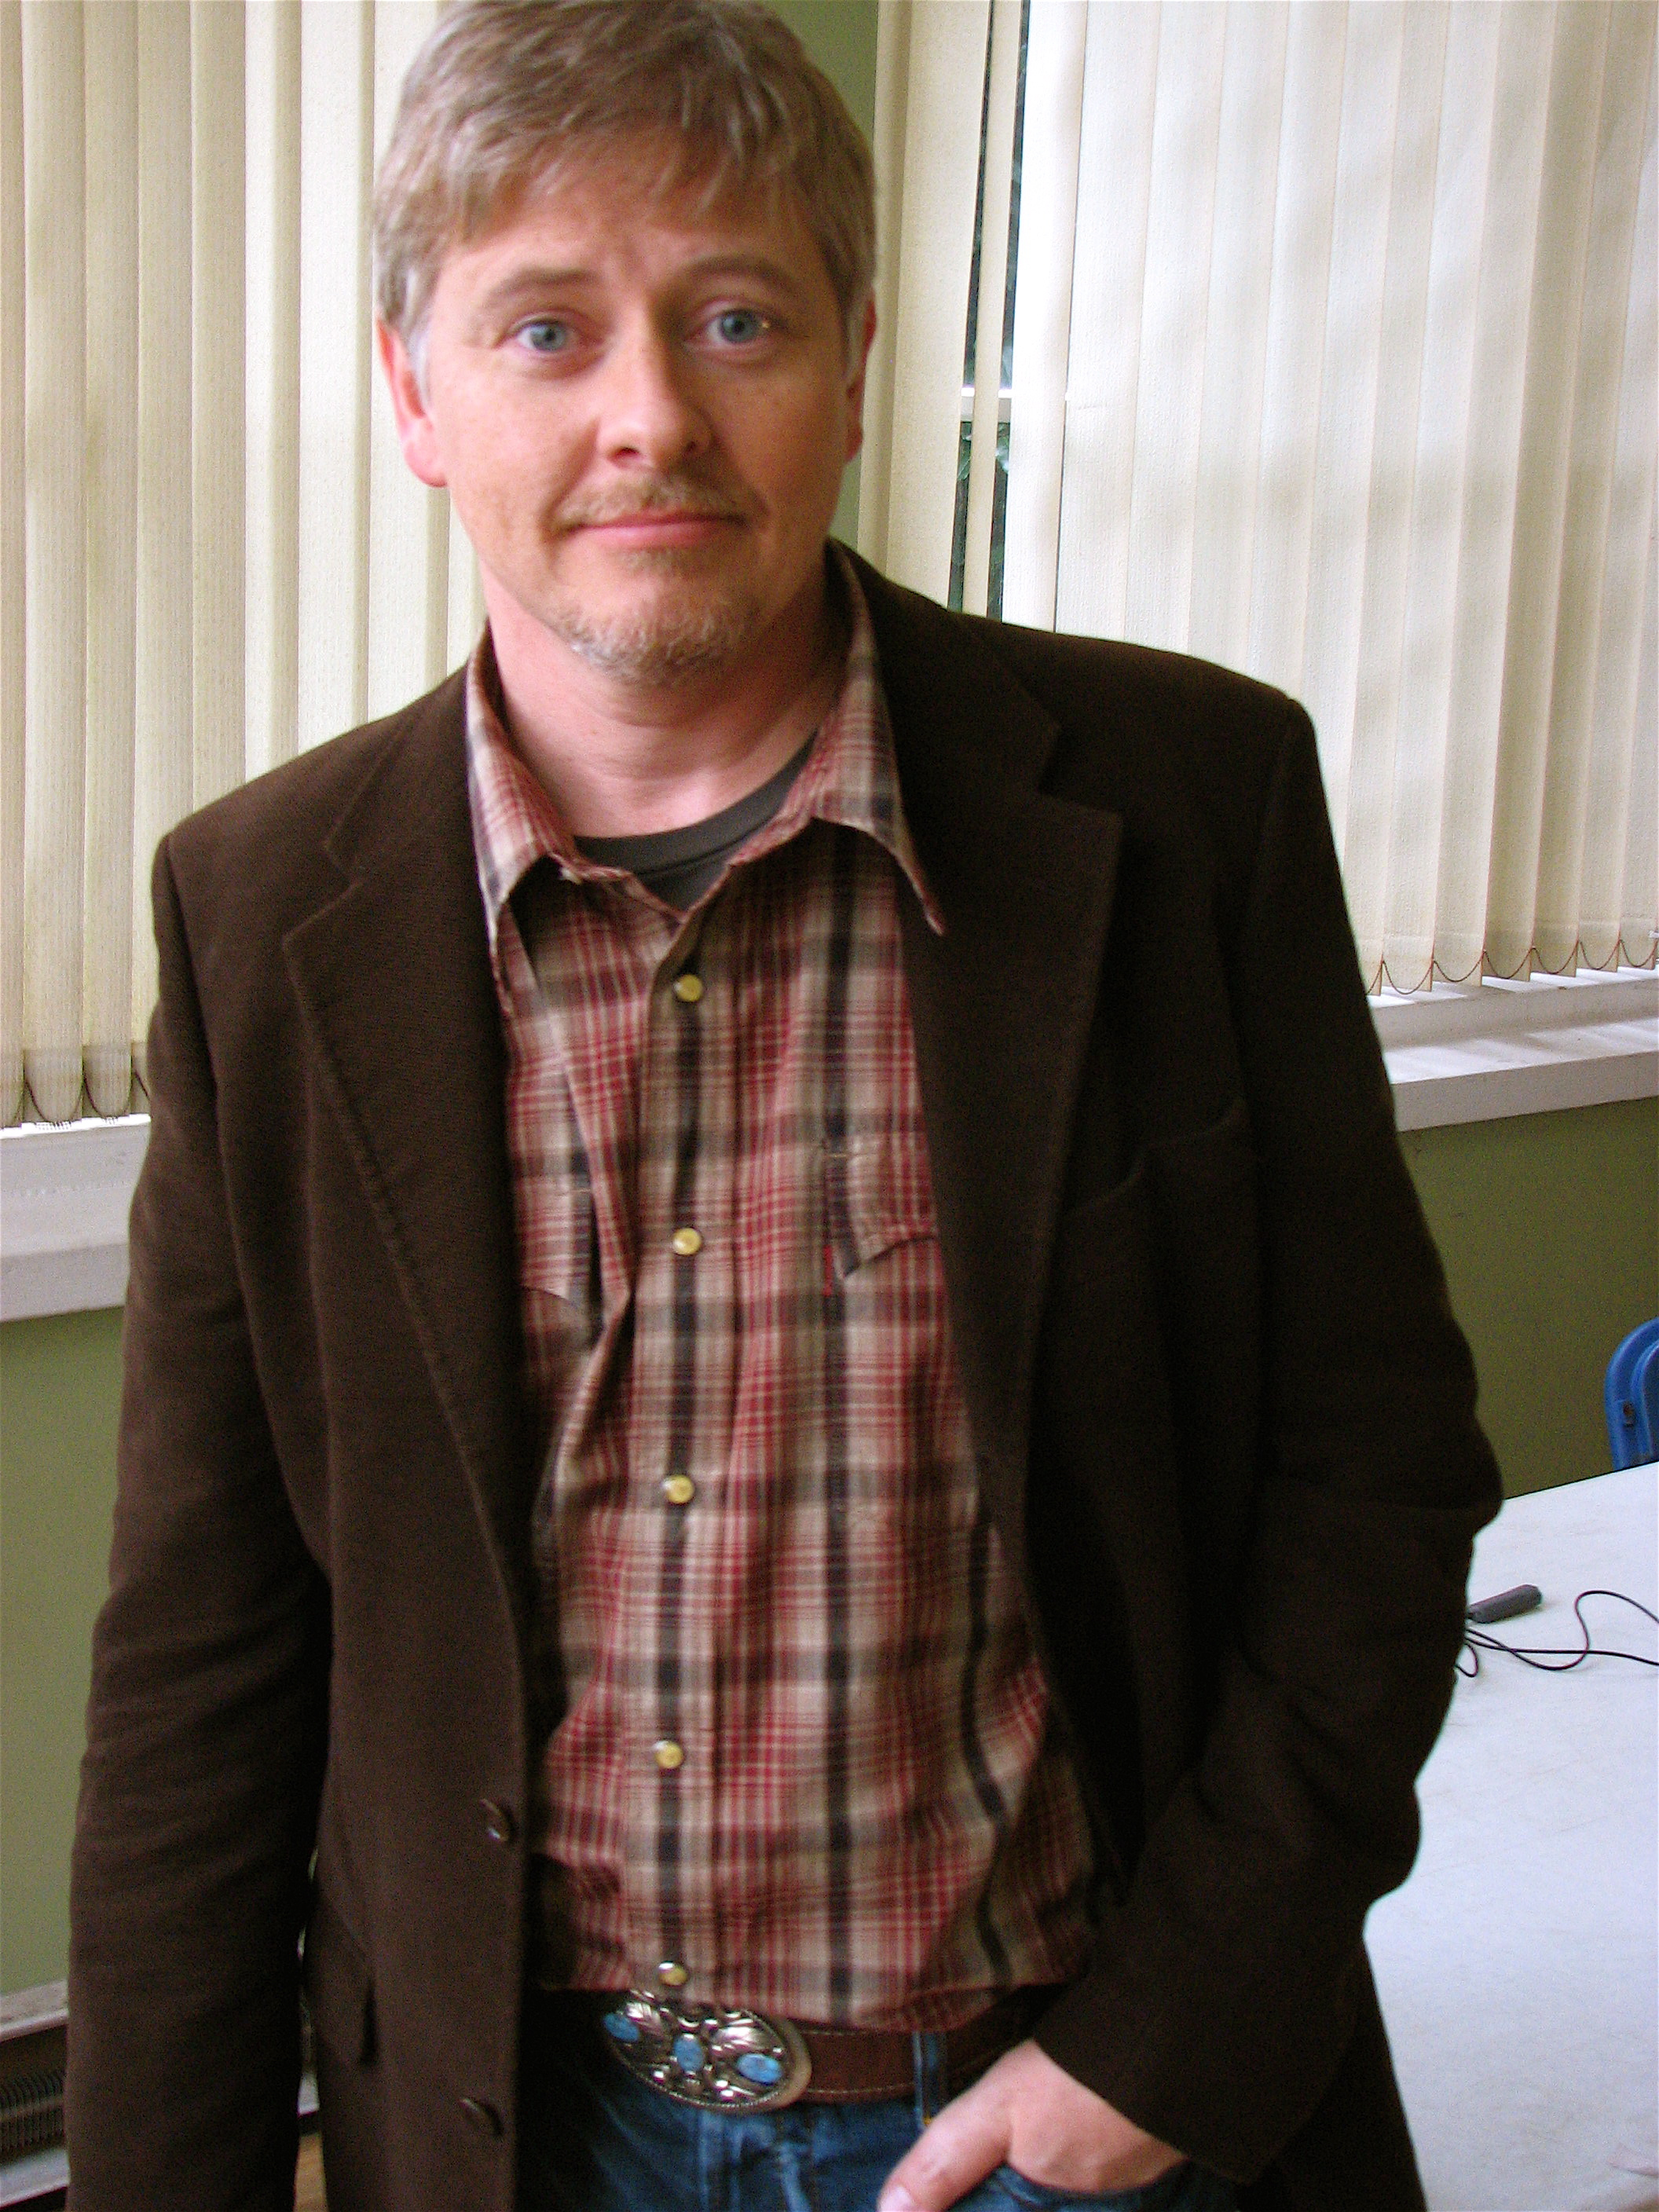 Dave Foley, Who Voiced Flik And Lives In A Van